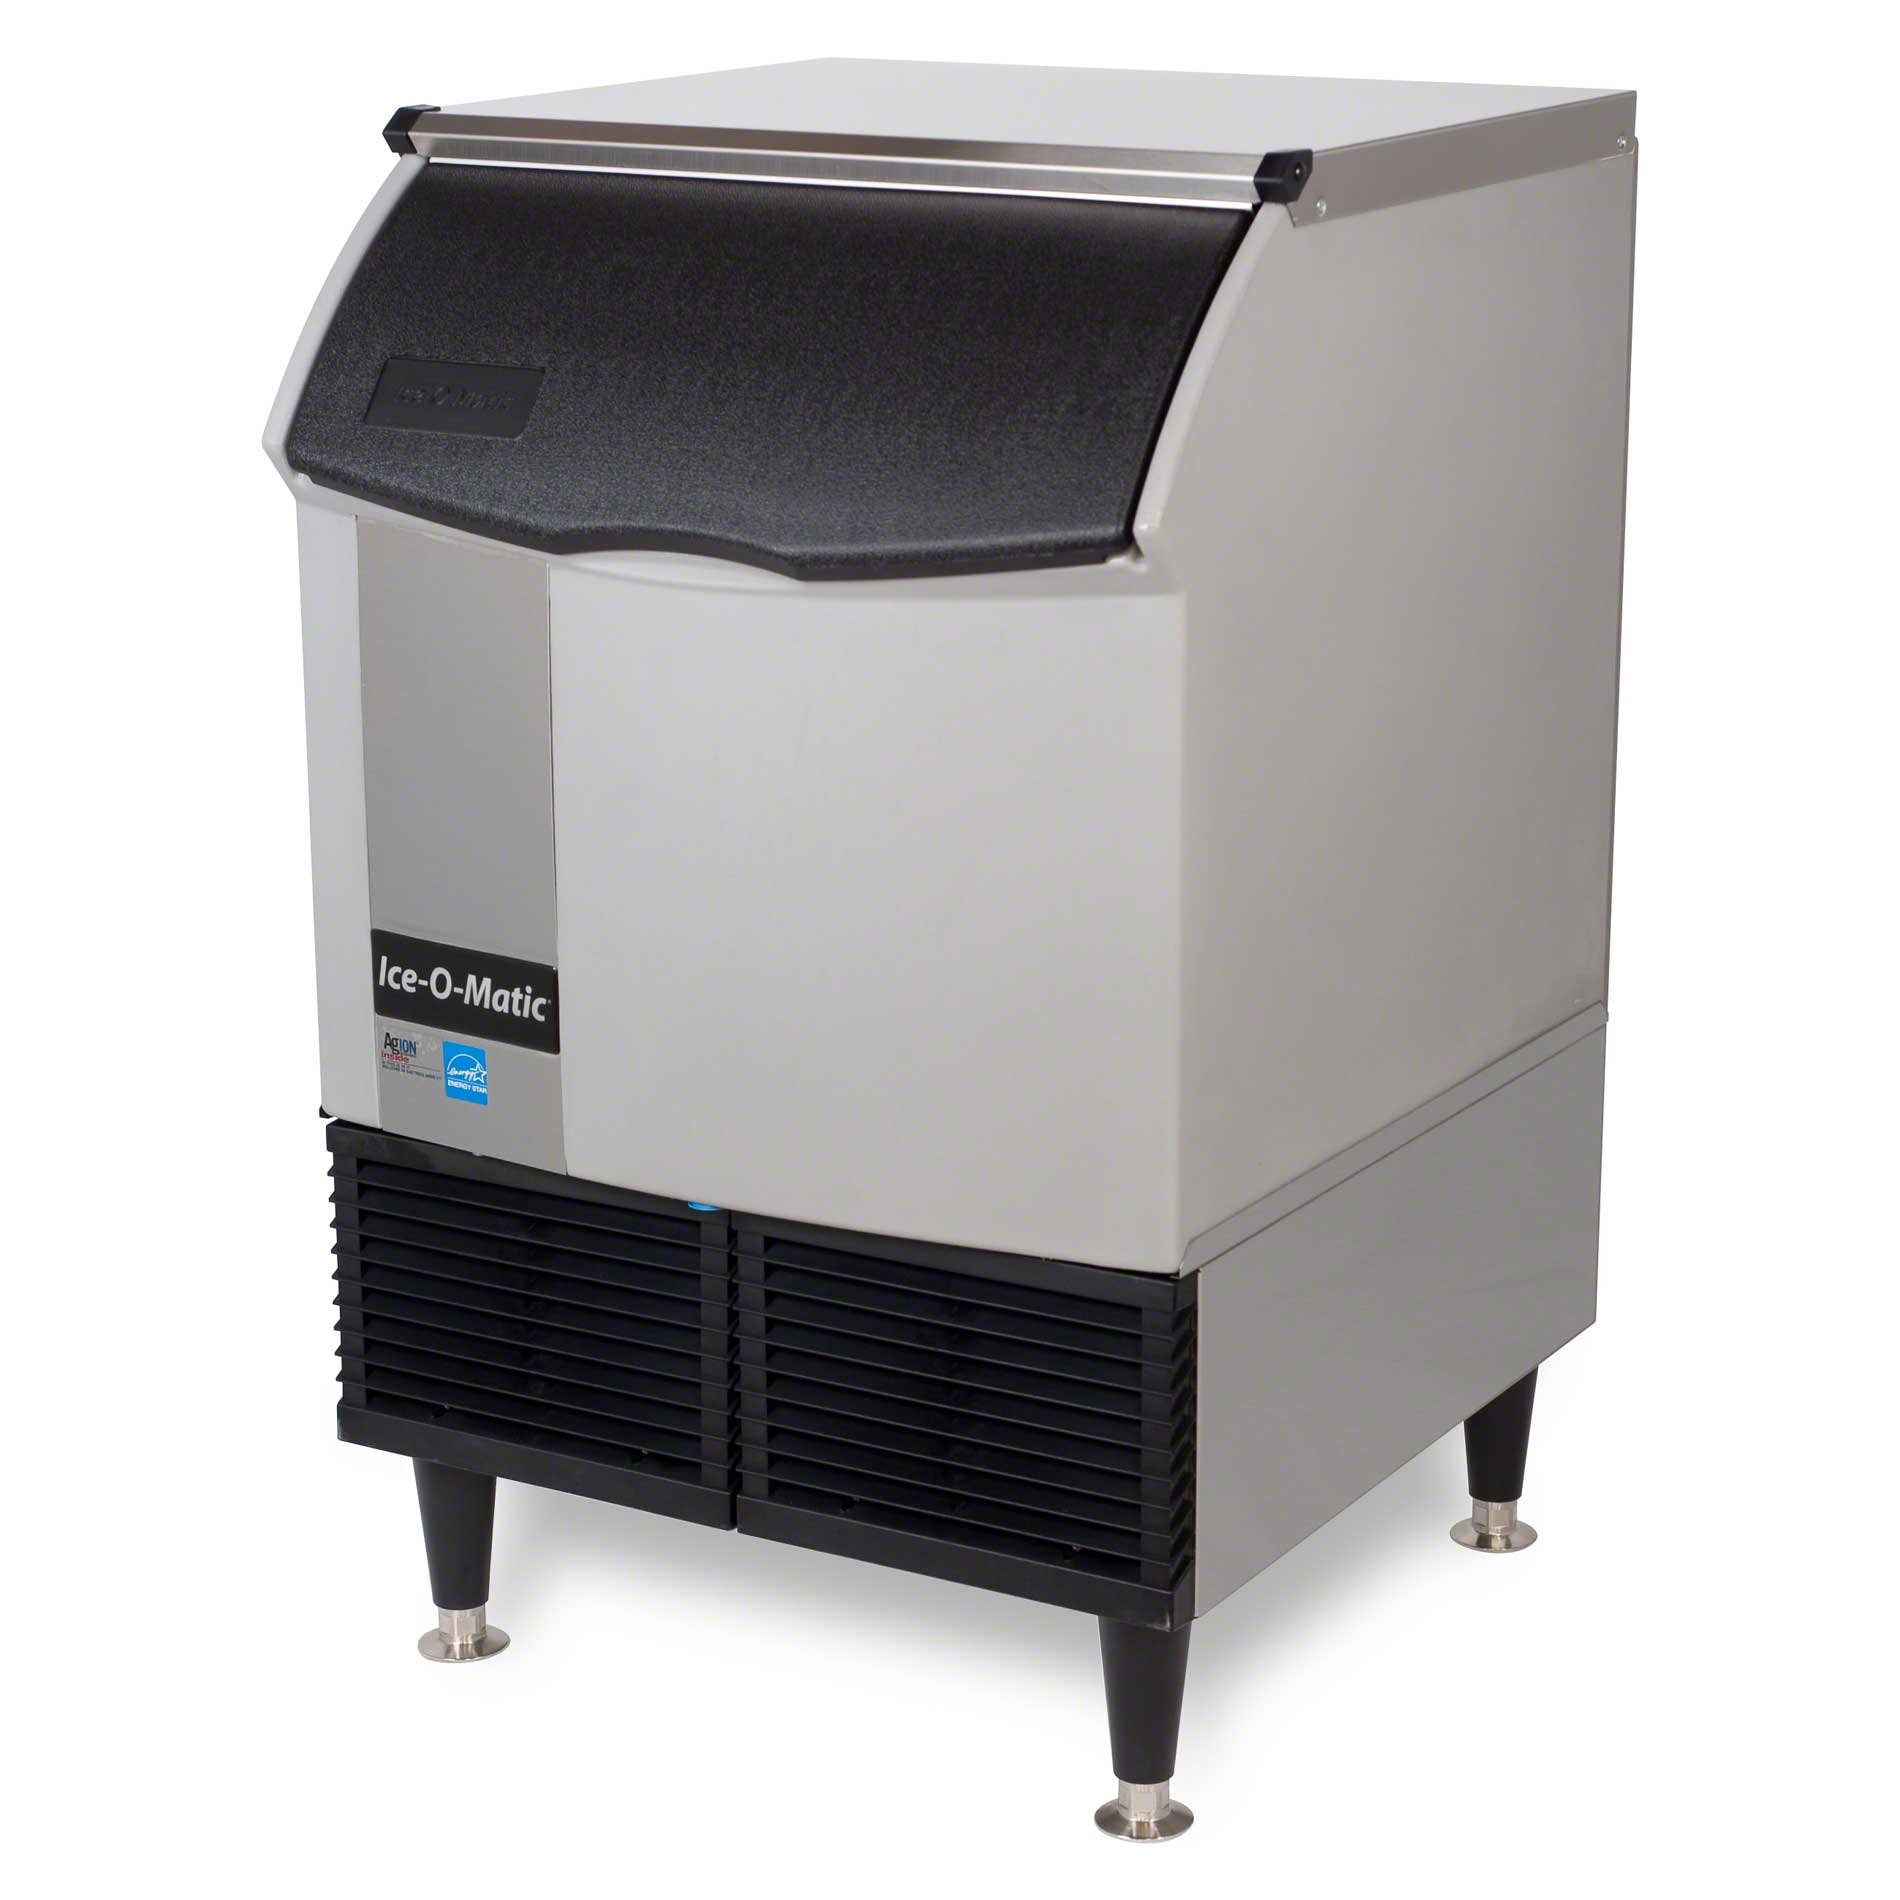 Ice-O-Matic - ICEU150HA 185 lb Self-Contained Half Cube Ice Machine Ice machine sold by Food Service Warehouse